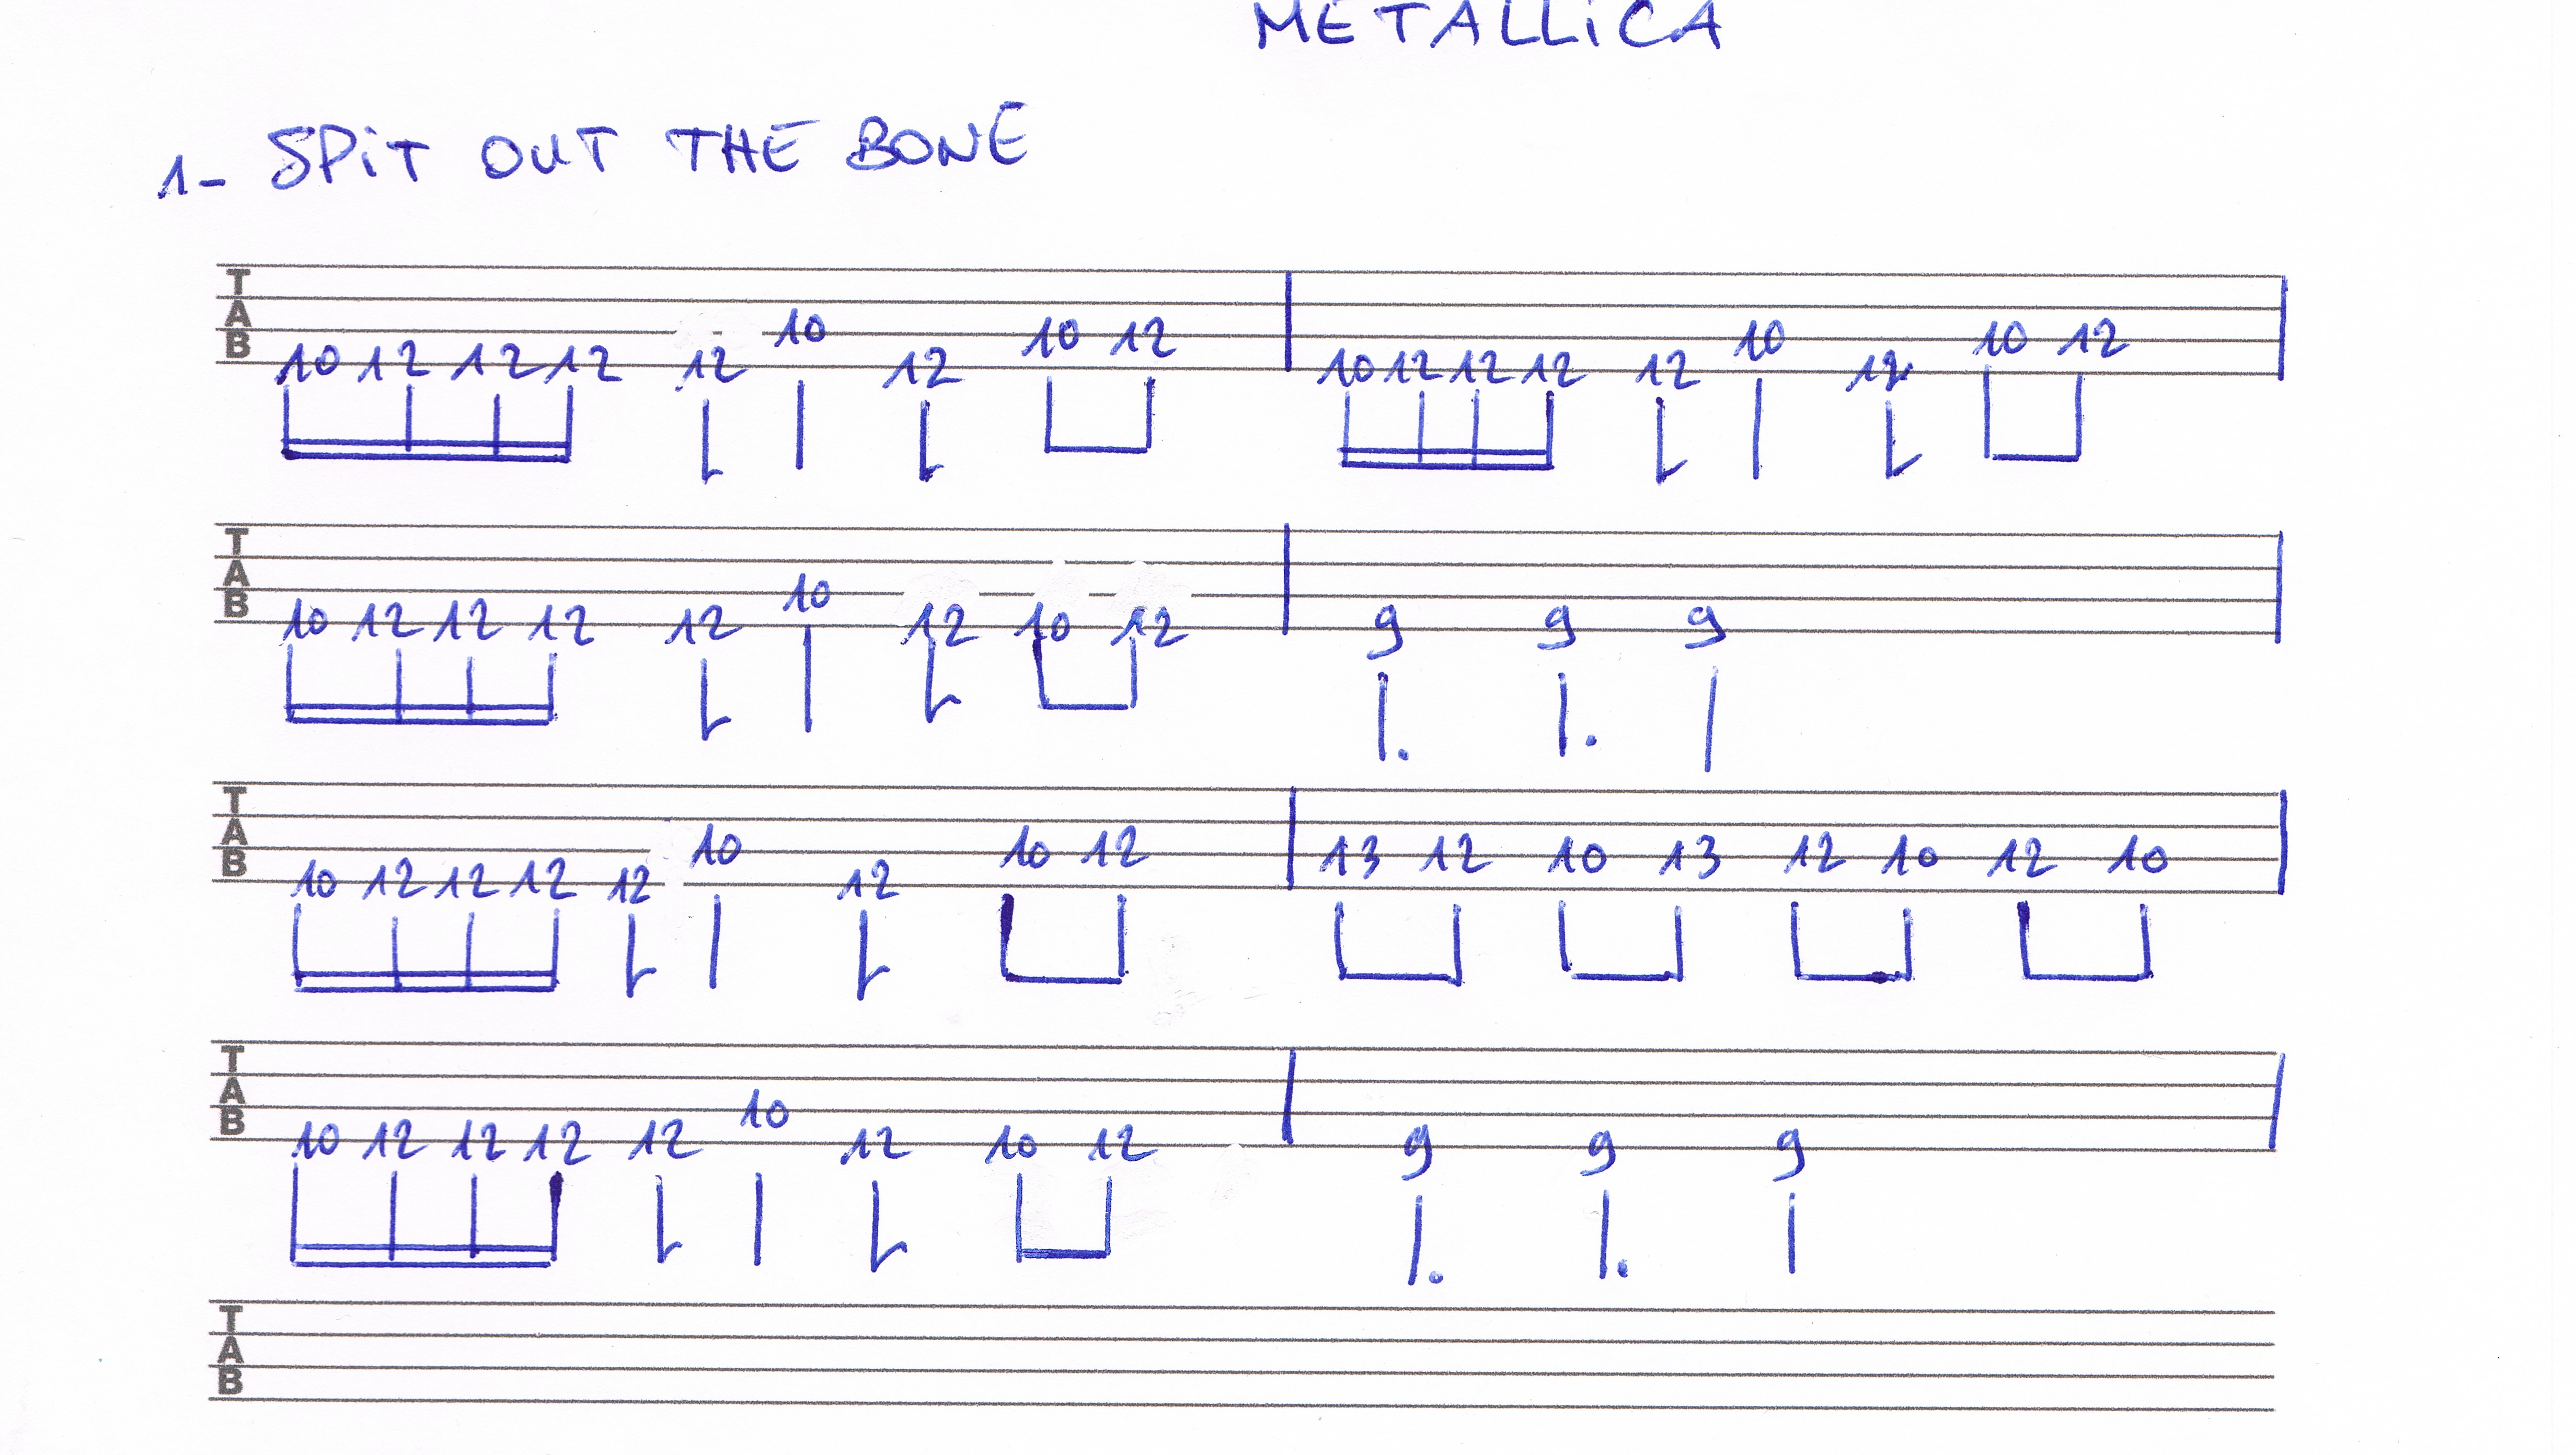 Metallica, Spit out the bone